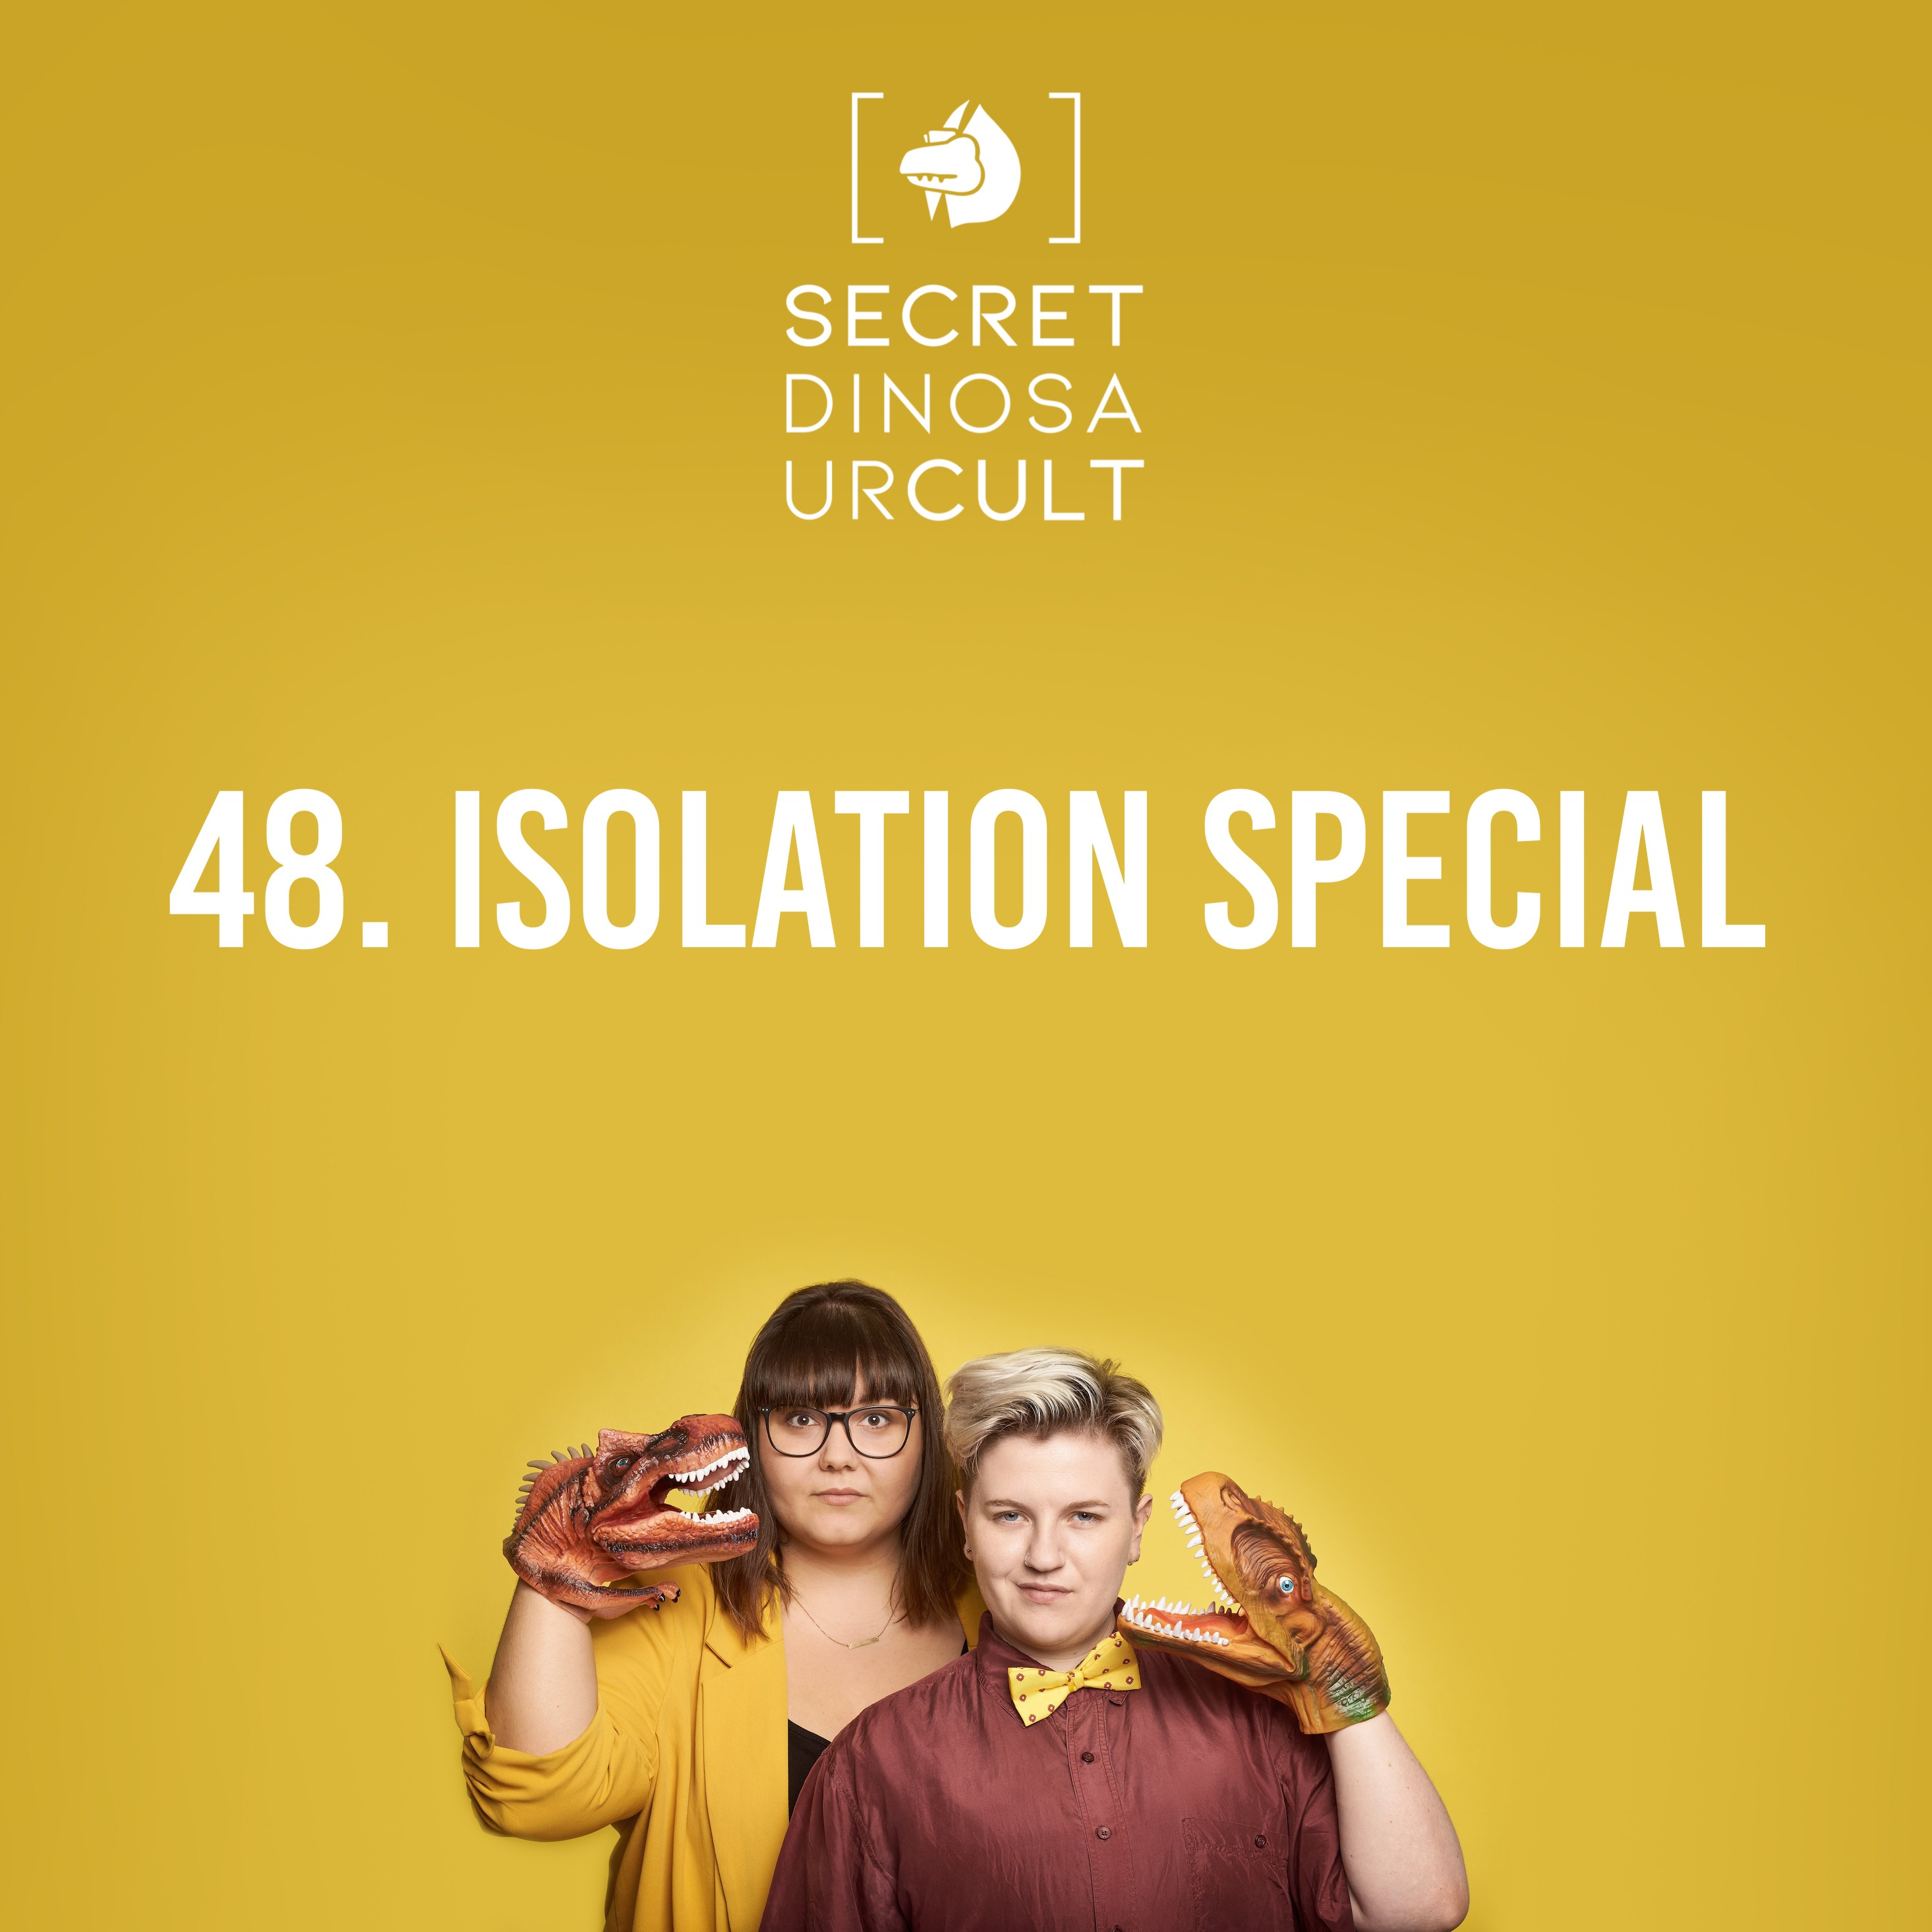 Isolation Special